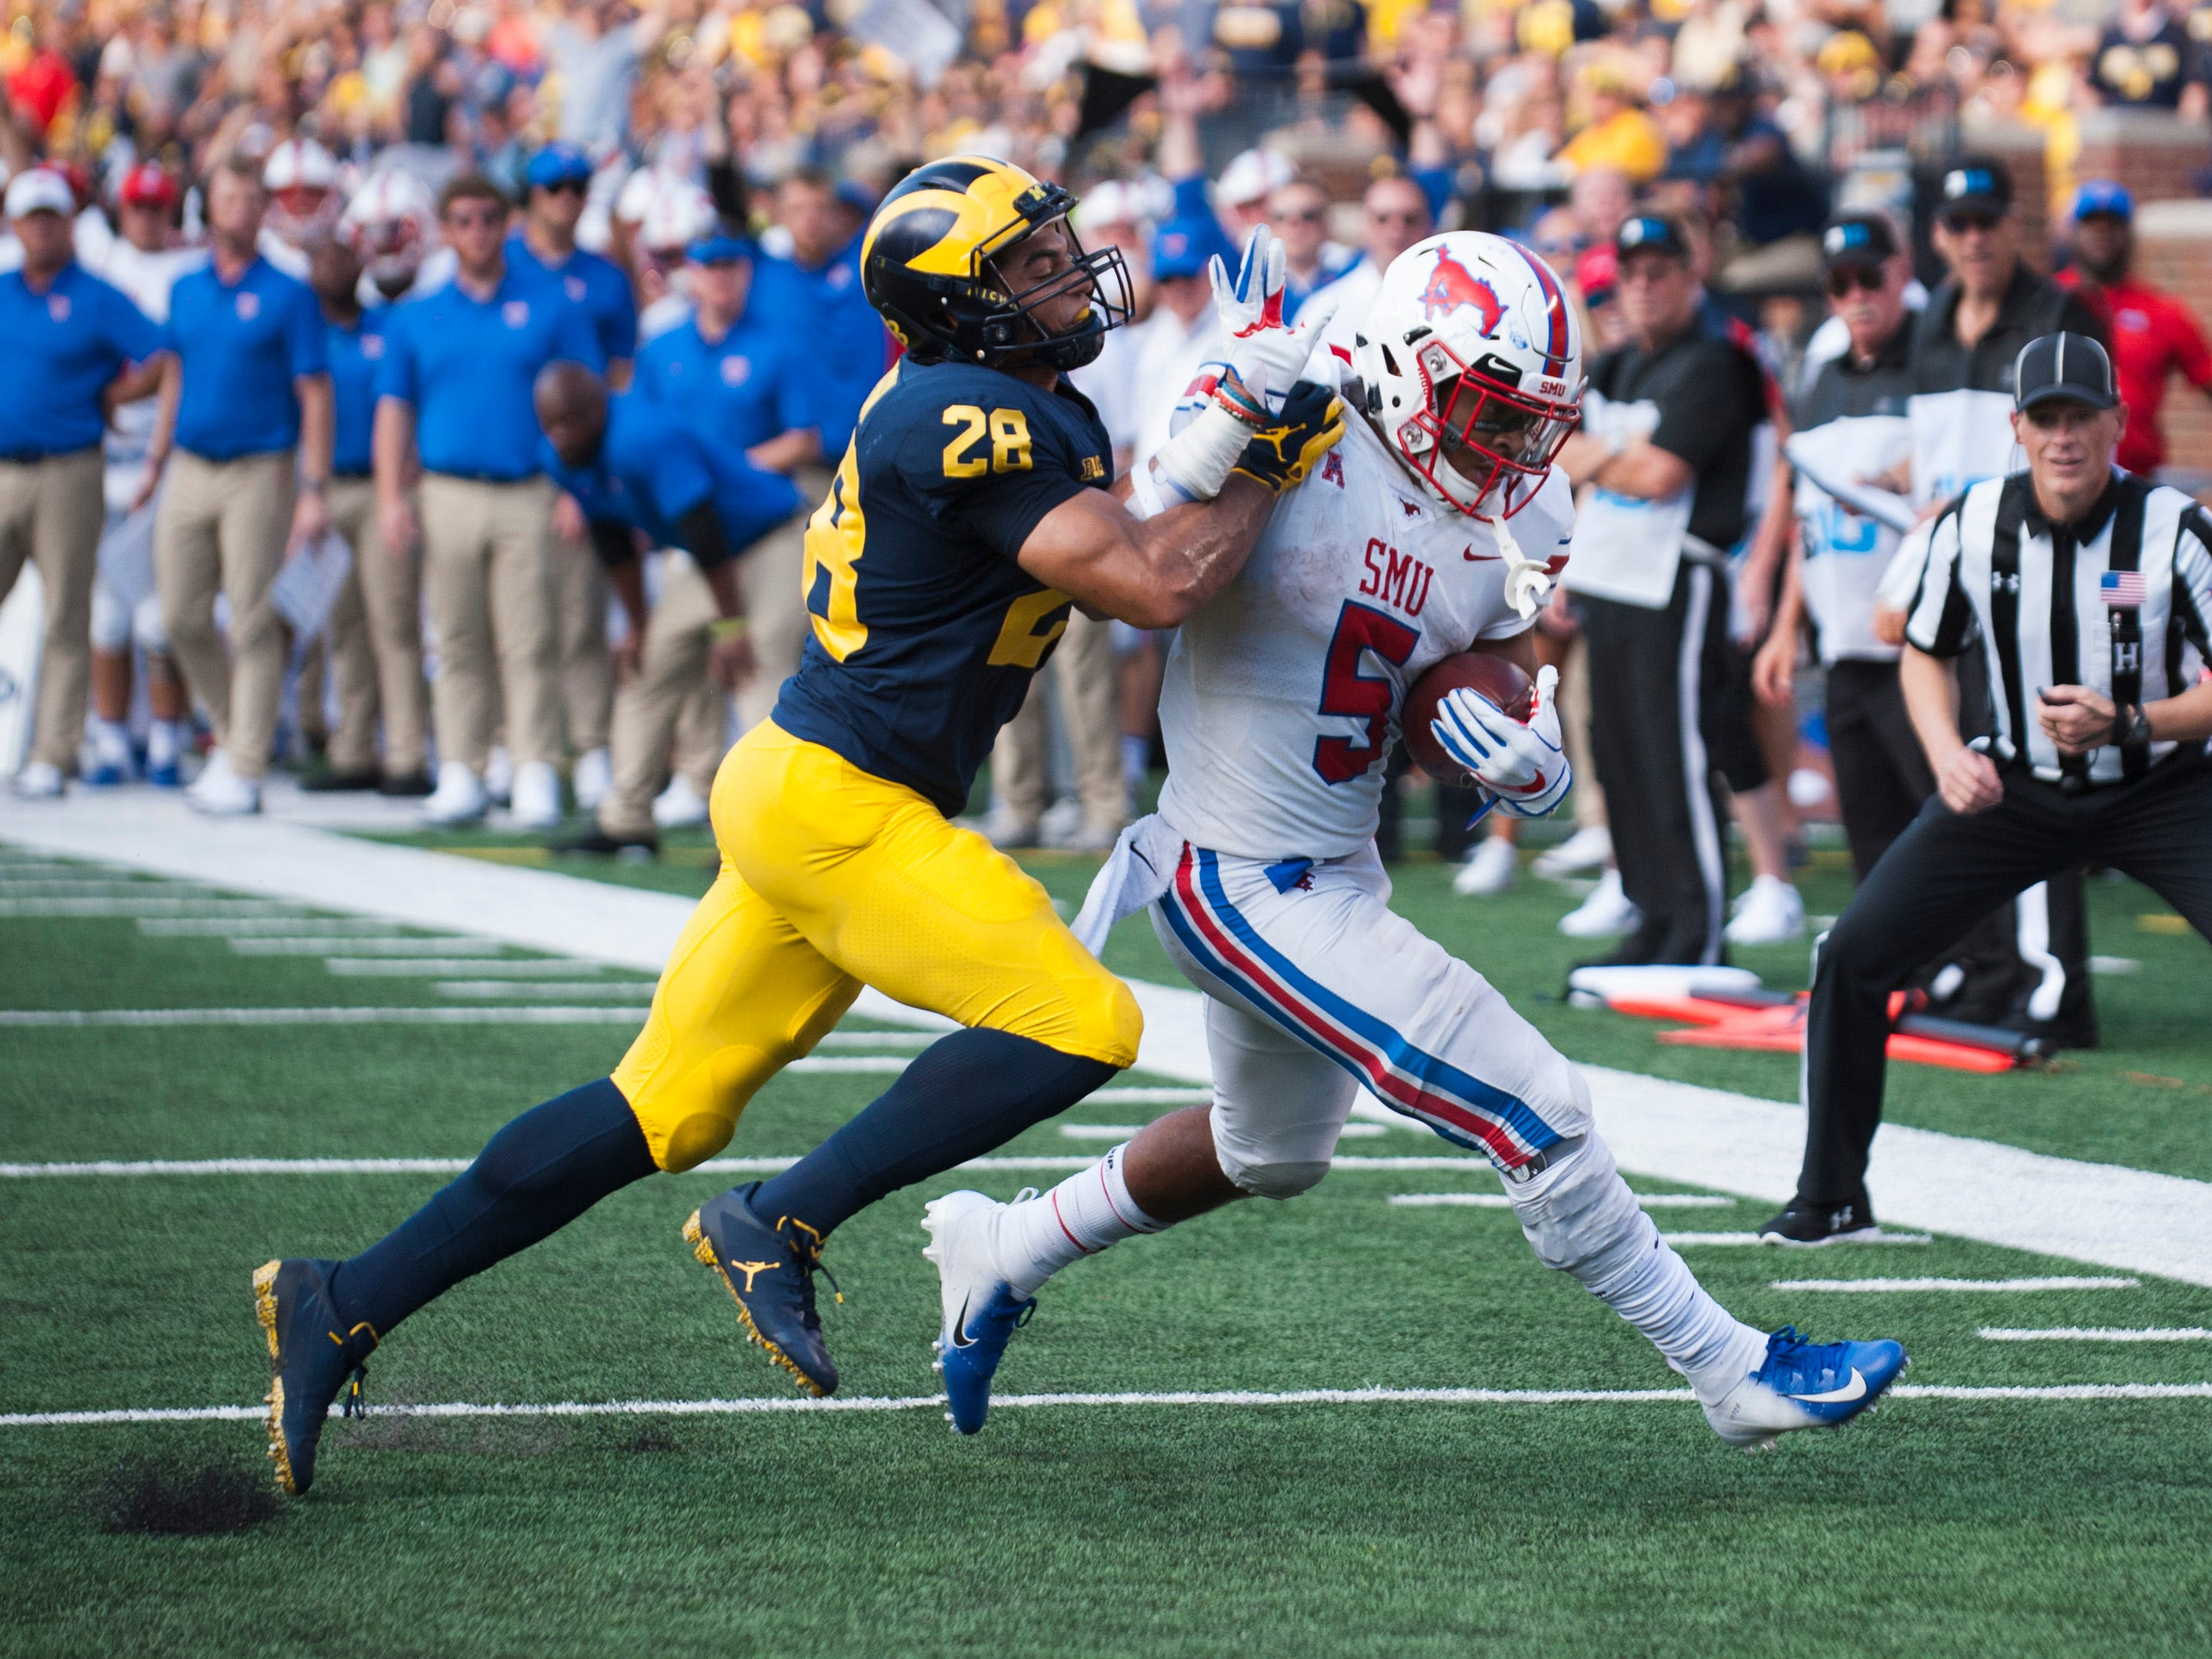 Michigan defensive back Brandon Watson forces Southern Methodist running back Xavier Jones out of bounds near the goalline in the second half.  **** The Michigan Wolverines defeated the Southern Methodist University Mustangs 45-20 at Michigan Stadium in Ann Arbor on Saturday, September 15, 2018.  (John T. Greilick, The Detroit News)